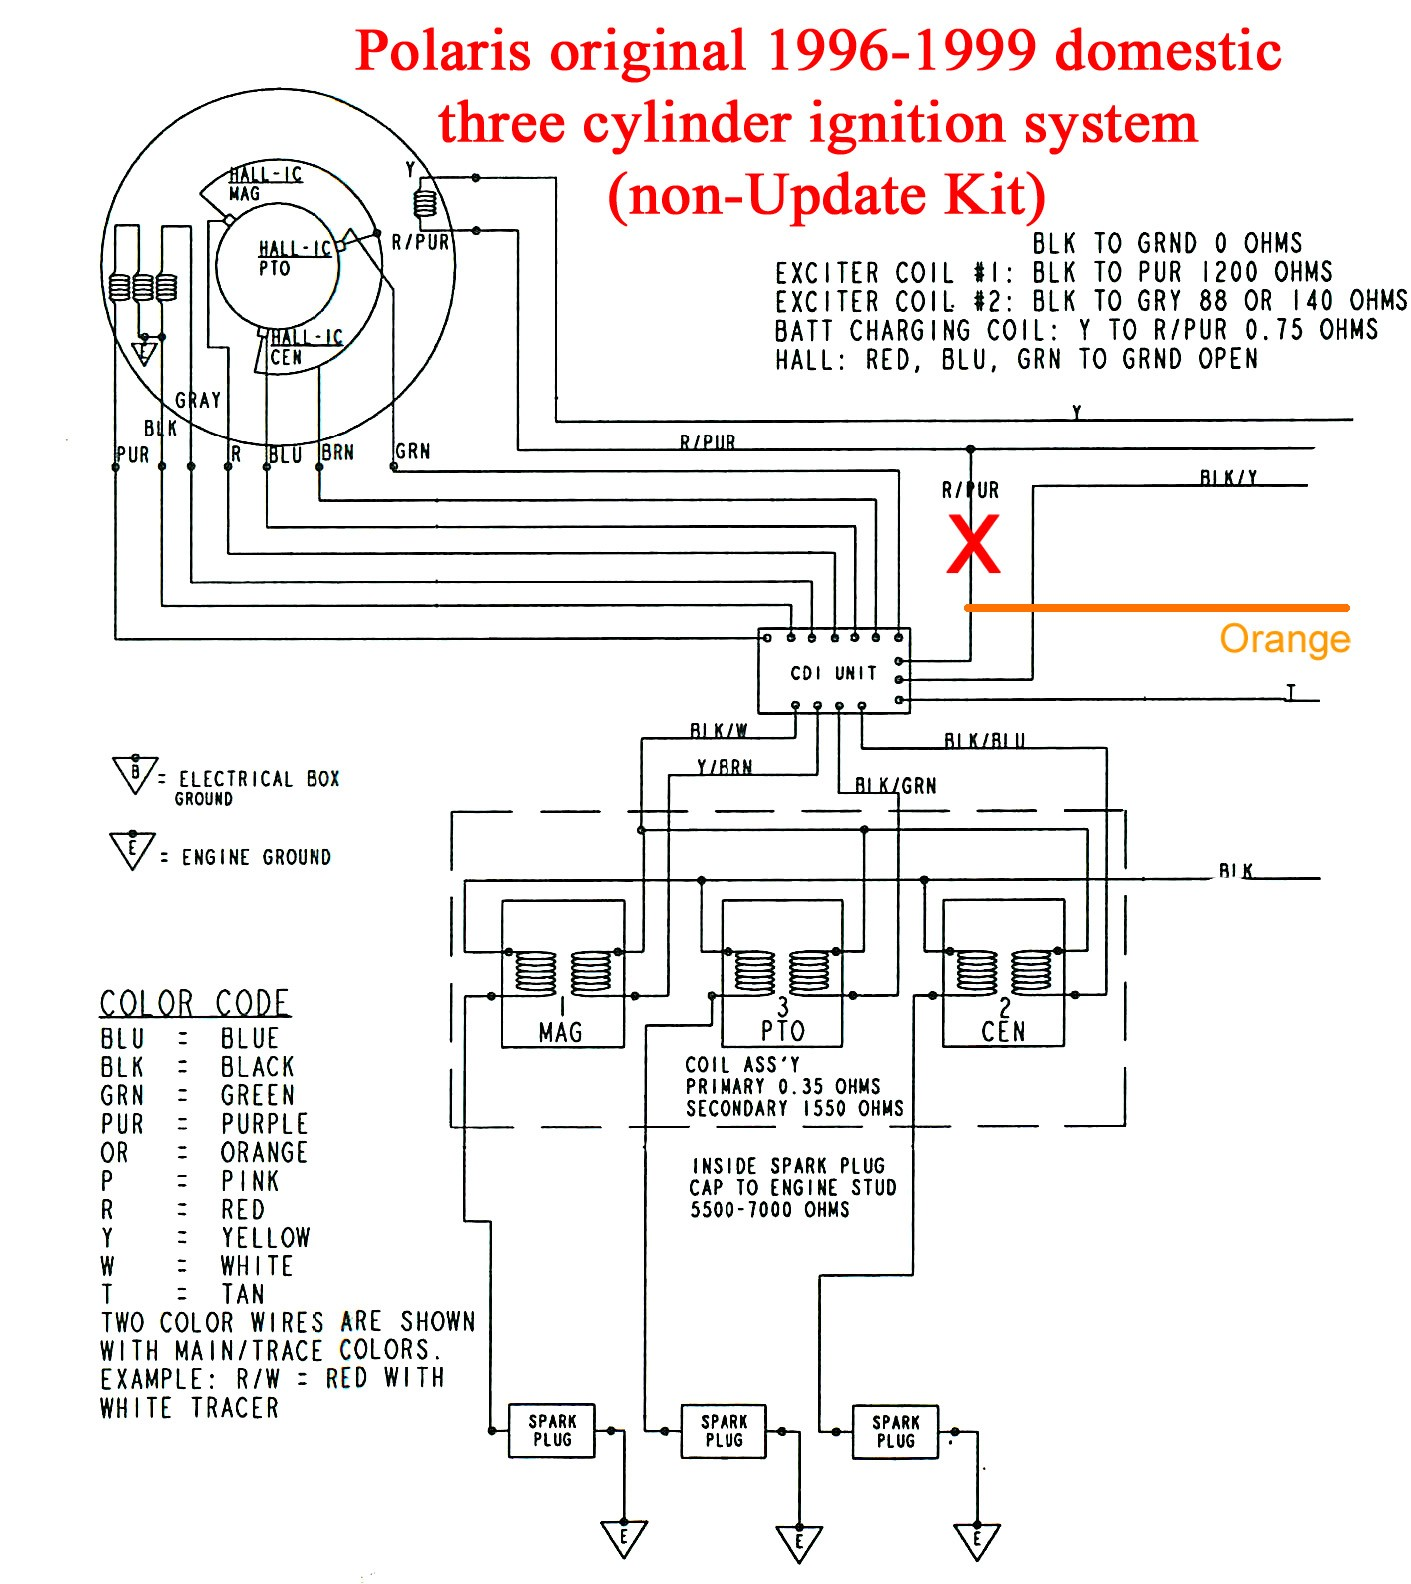 Cb200 Wiring Diagram Vt750 Motorcycle Cd70 Engine 1974 Honda Cl200 Rebuild Cb750